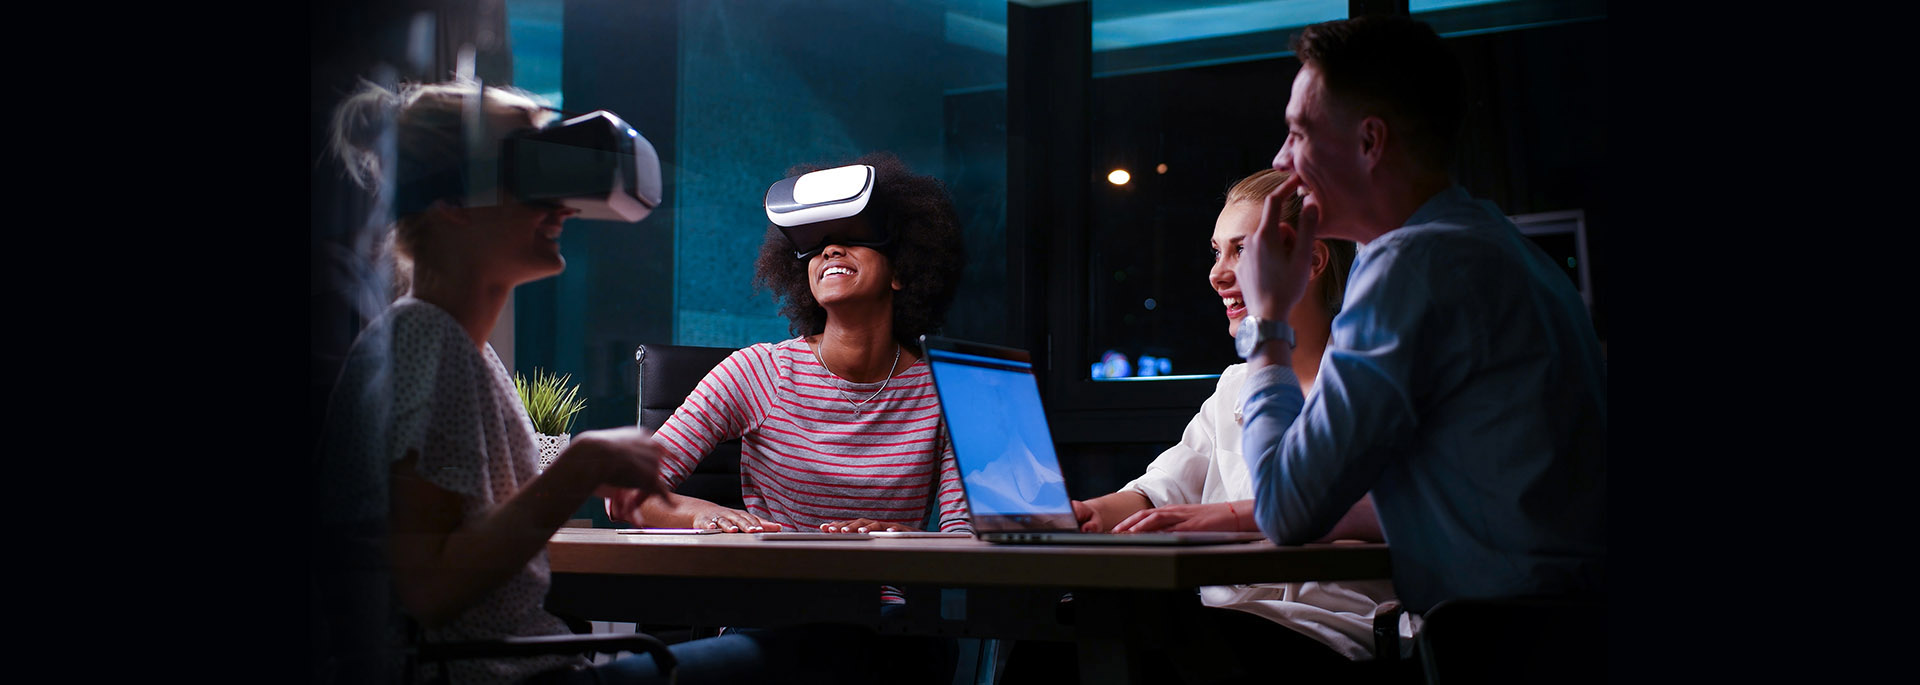 Elevated B2B Strategy: What Makes a Killer AR/VR Experience